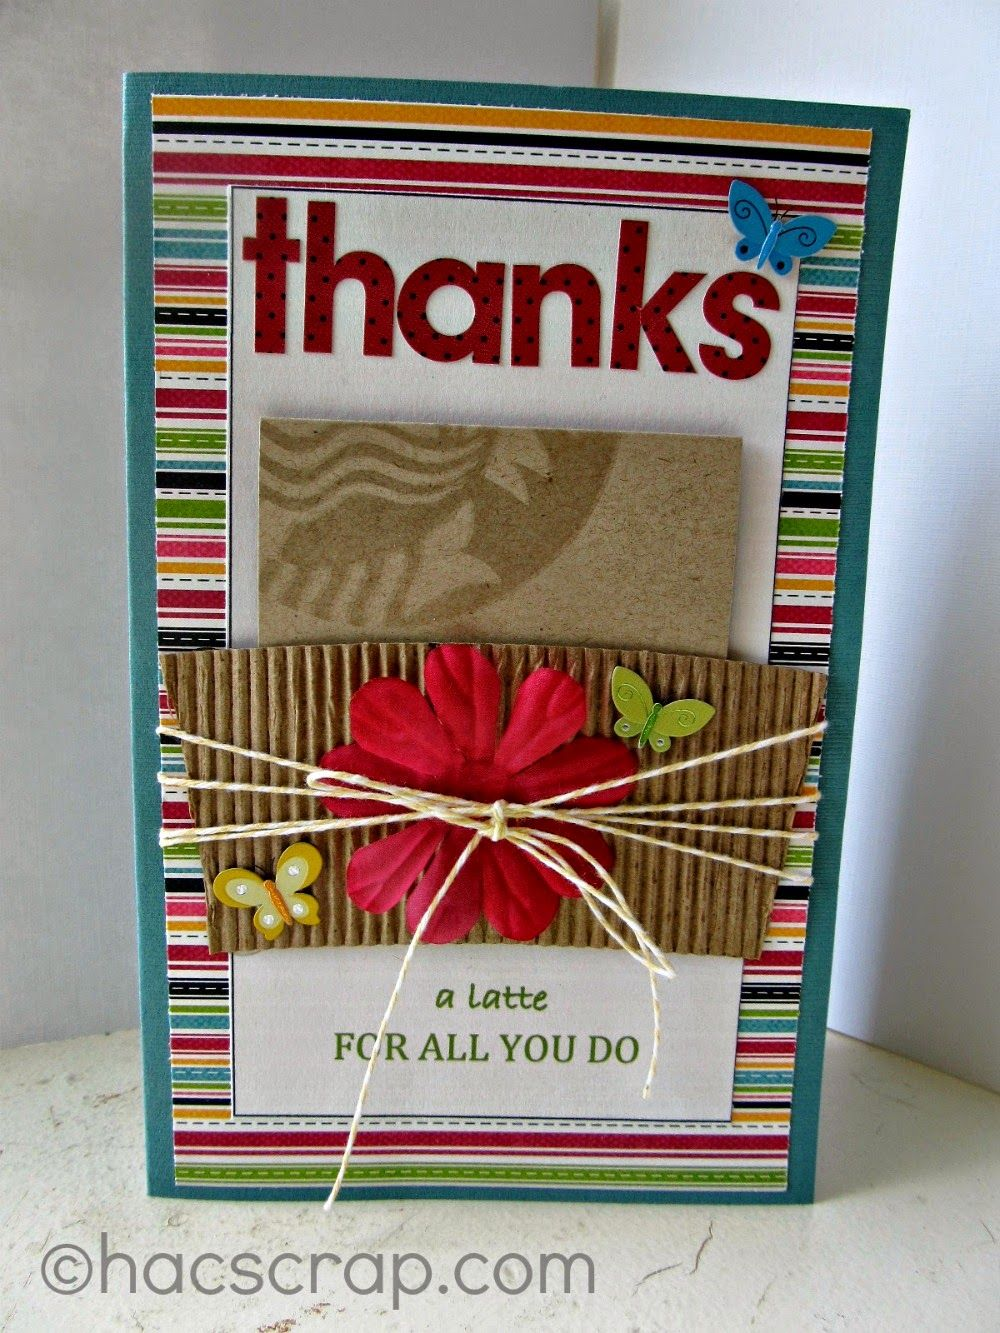 My Scraps   Thanks a Latte Gift Card Holder Card - perfect for upcoming Teacher Appreciation Day. Thank your coaches, teachers and administrative assistants too!